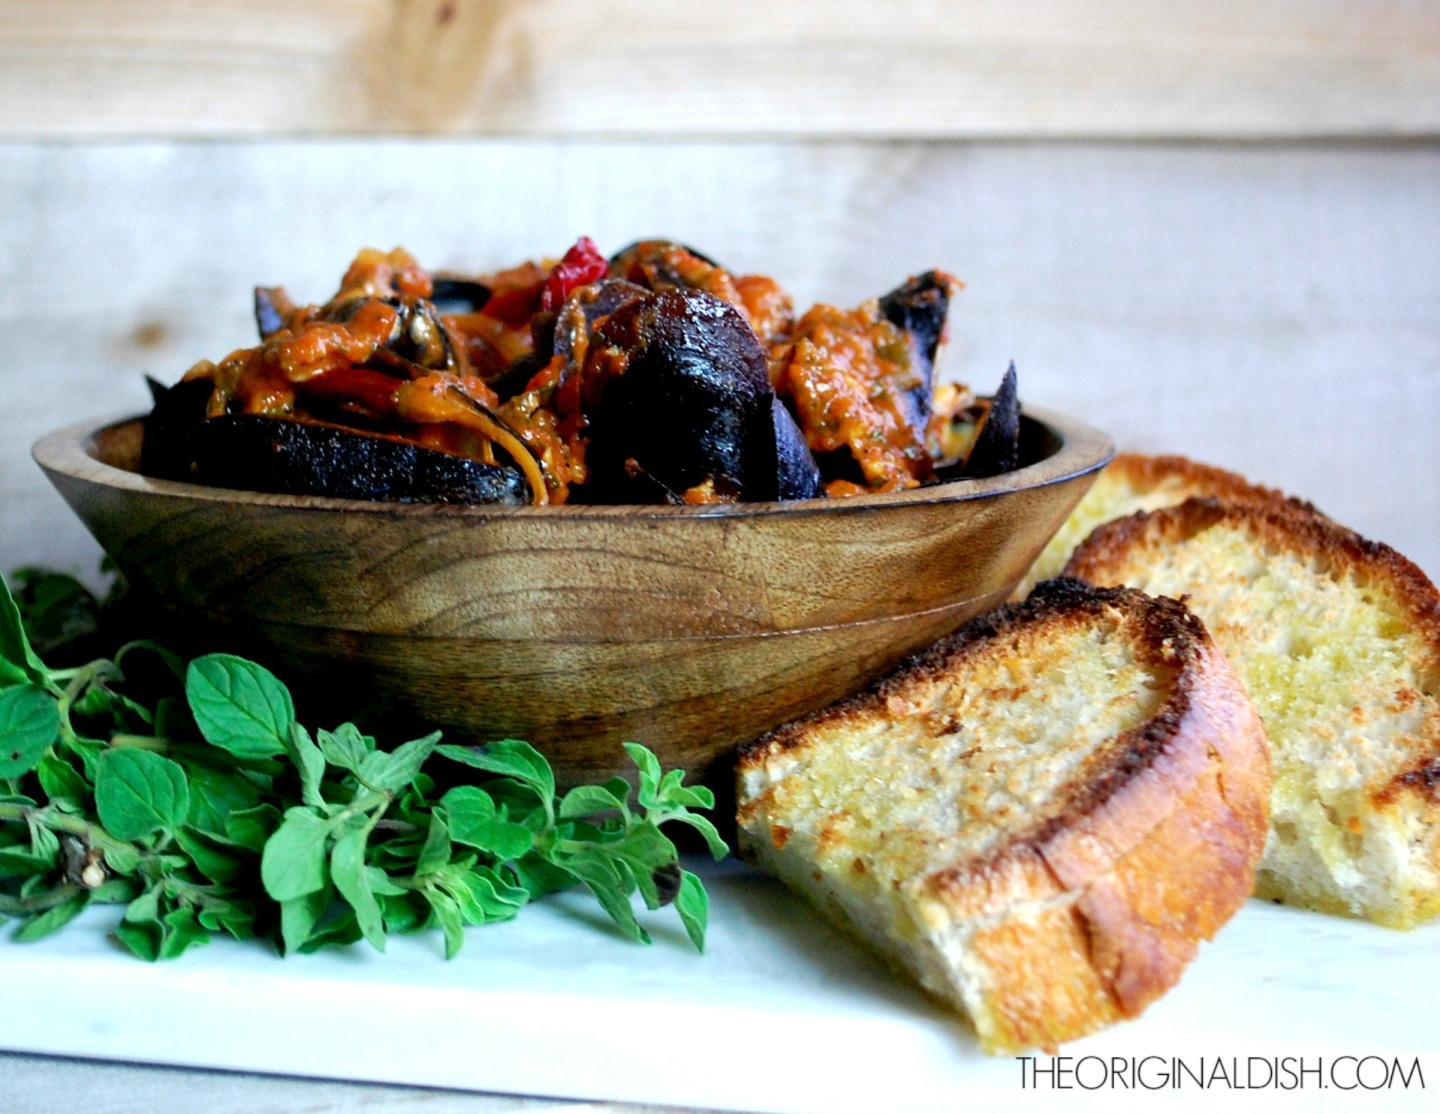 Steamed Mussels in Spicy Tomato-Wine Broth with Crusty GarlicBread